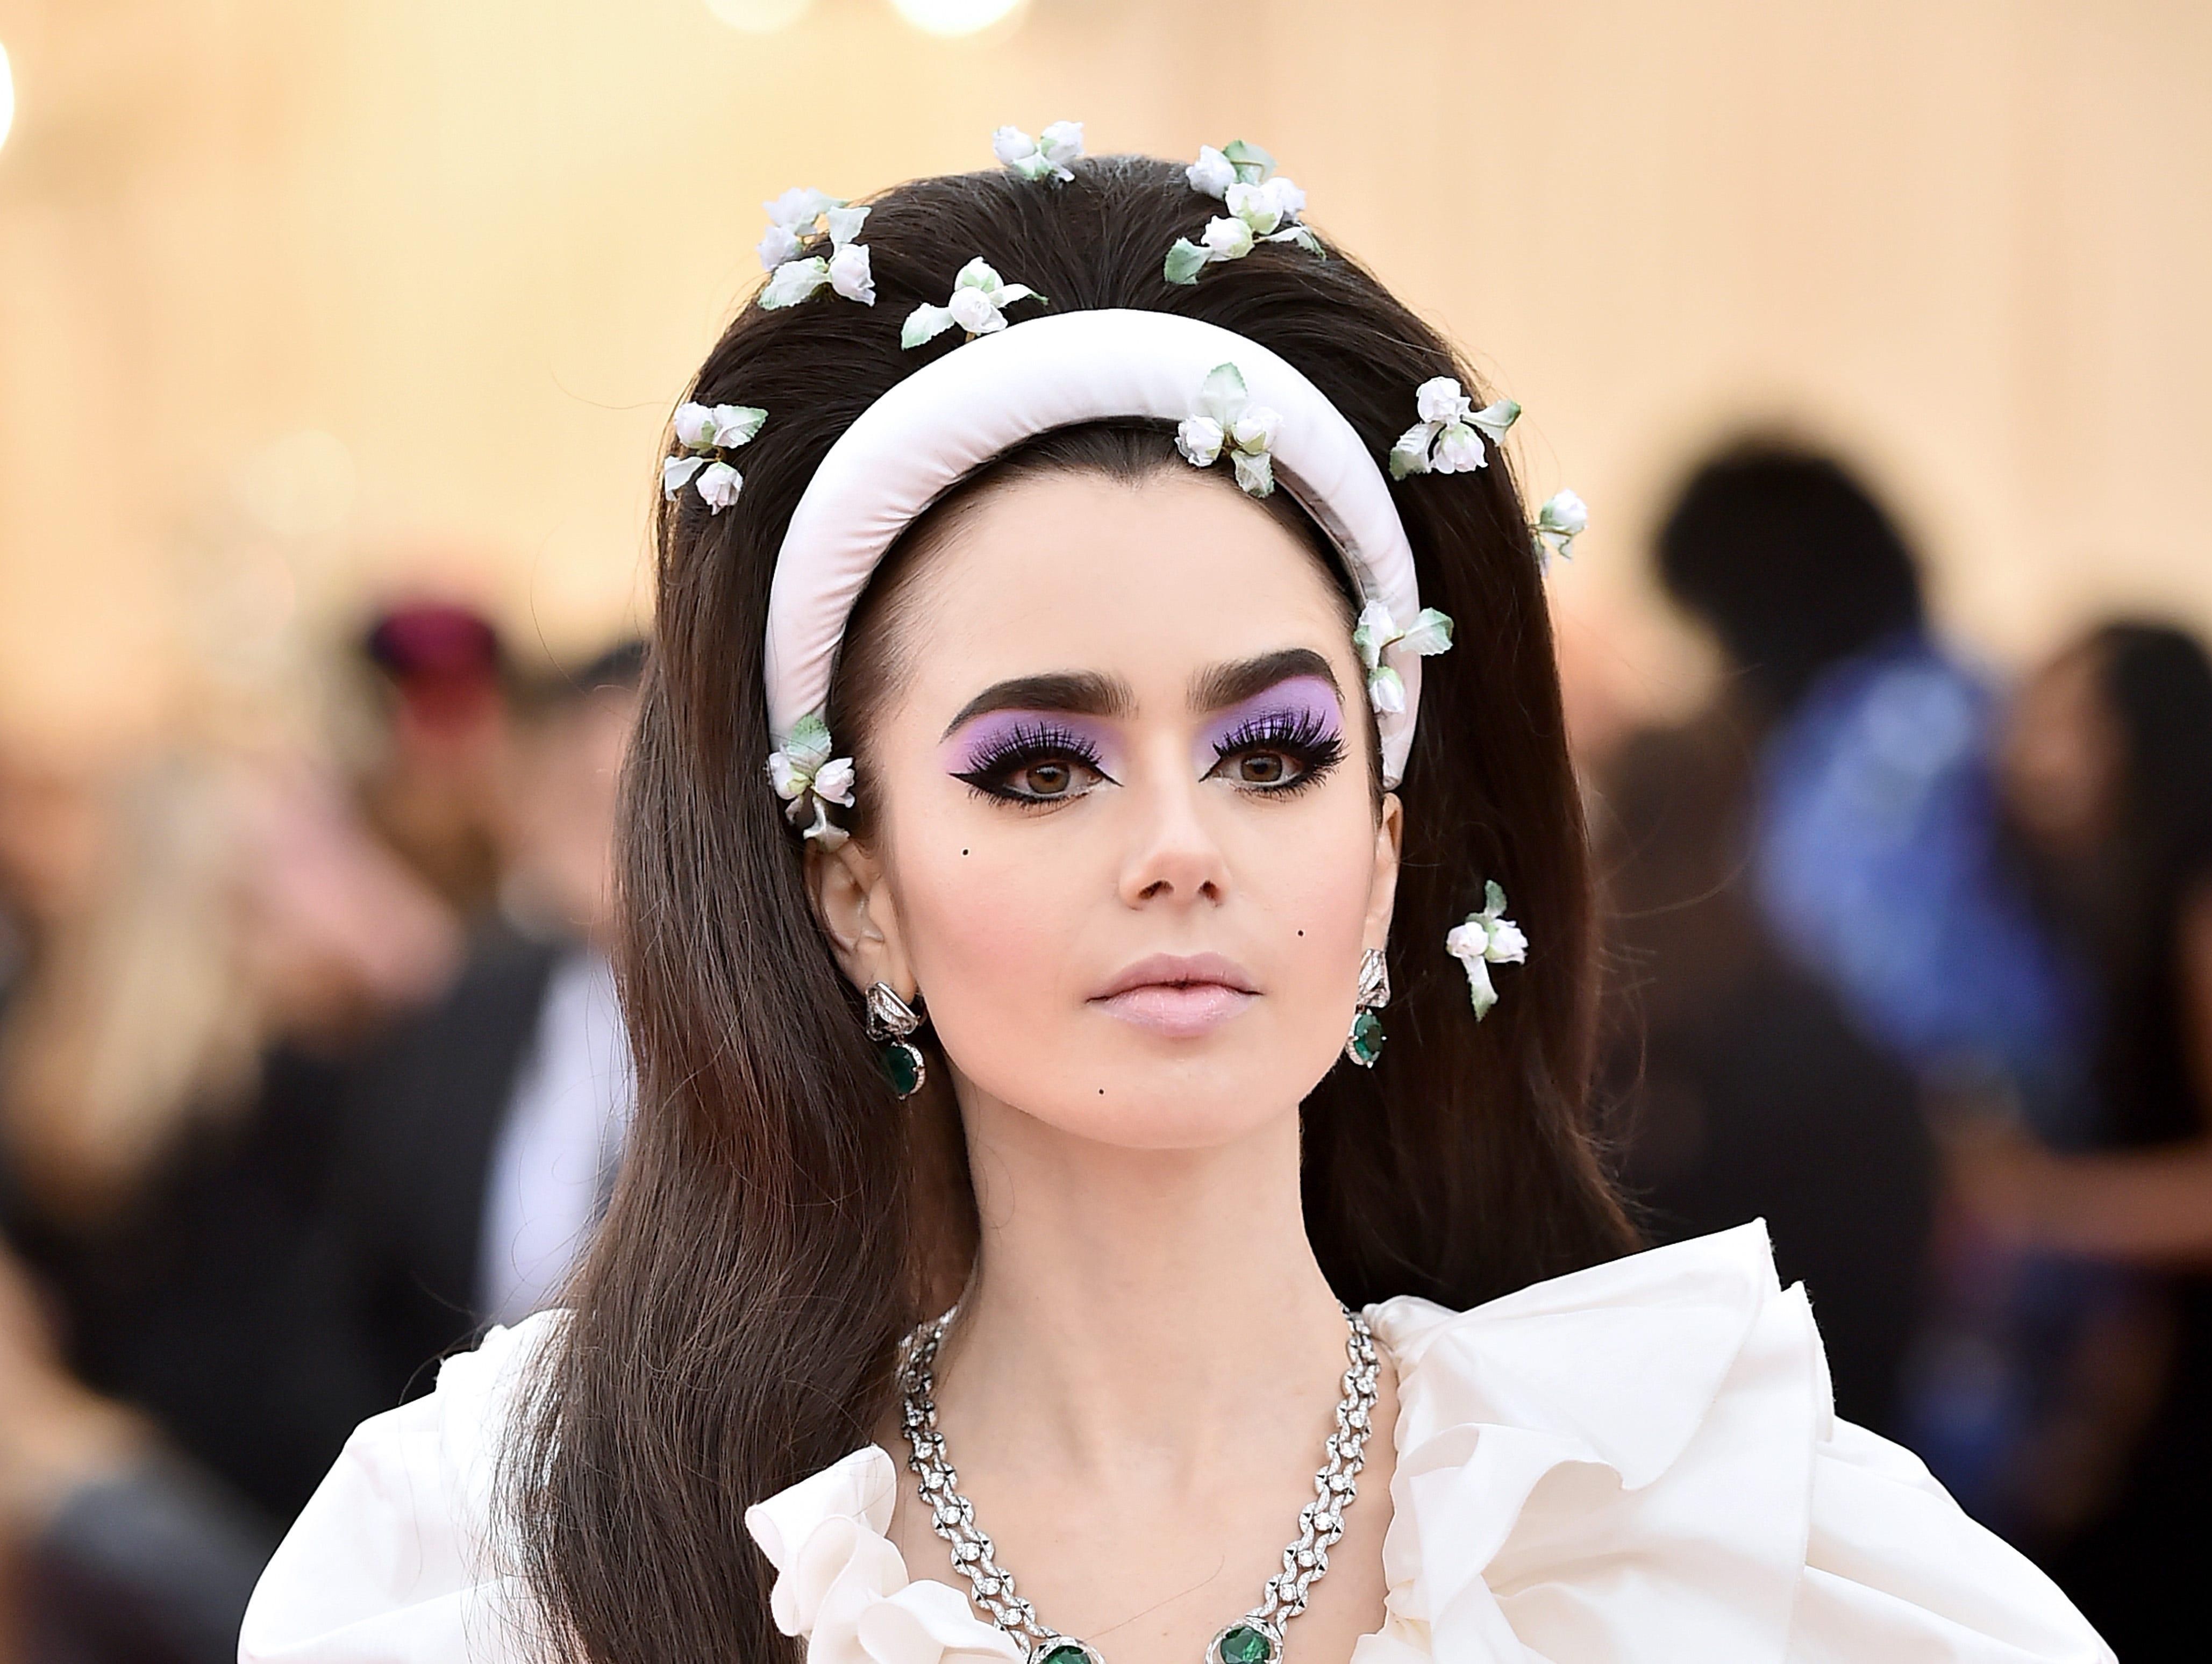 NEW YORK, NEW YORK - MAY 06: Lily Collins attends The 2019 Met Gala Celebrating Camp: Notes on Fashion at Metropolitan Museum of Art on May 06, 2019 in New York City. (Photo by Theo Wargo/WireImage) ORG XMIT: 775333959 ORIG FILE ID: 1147433720